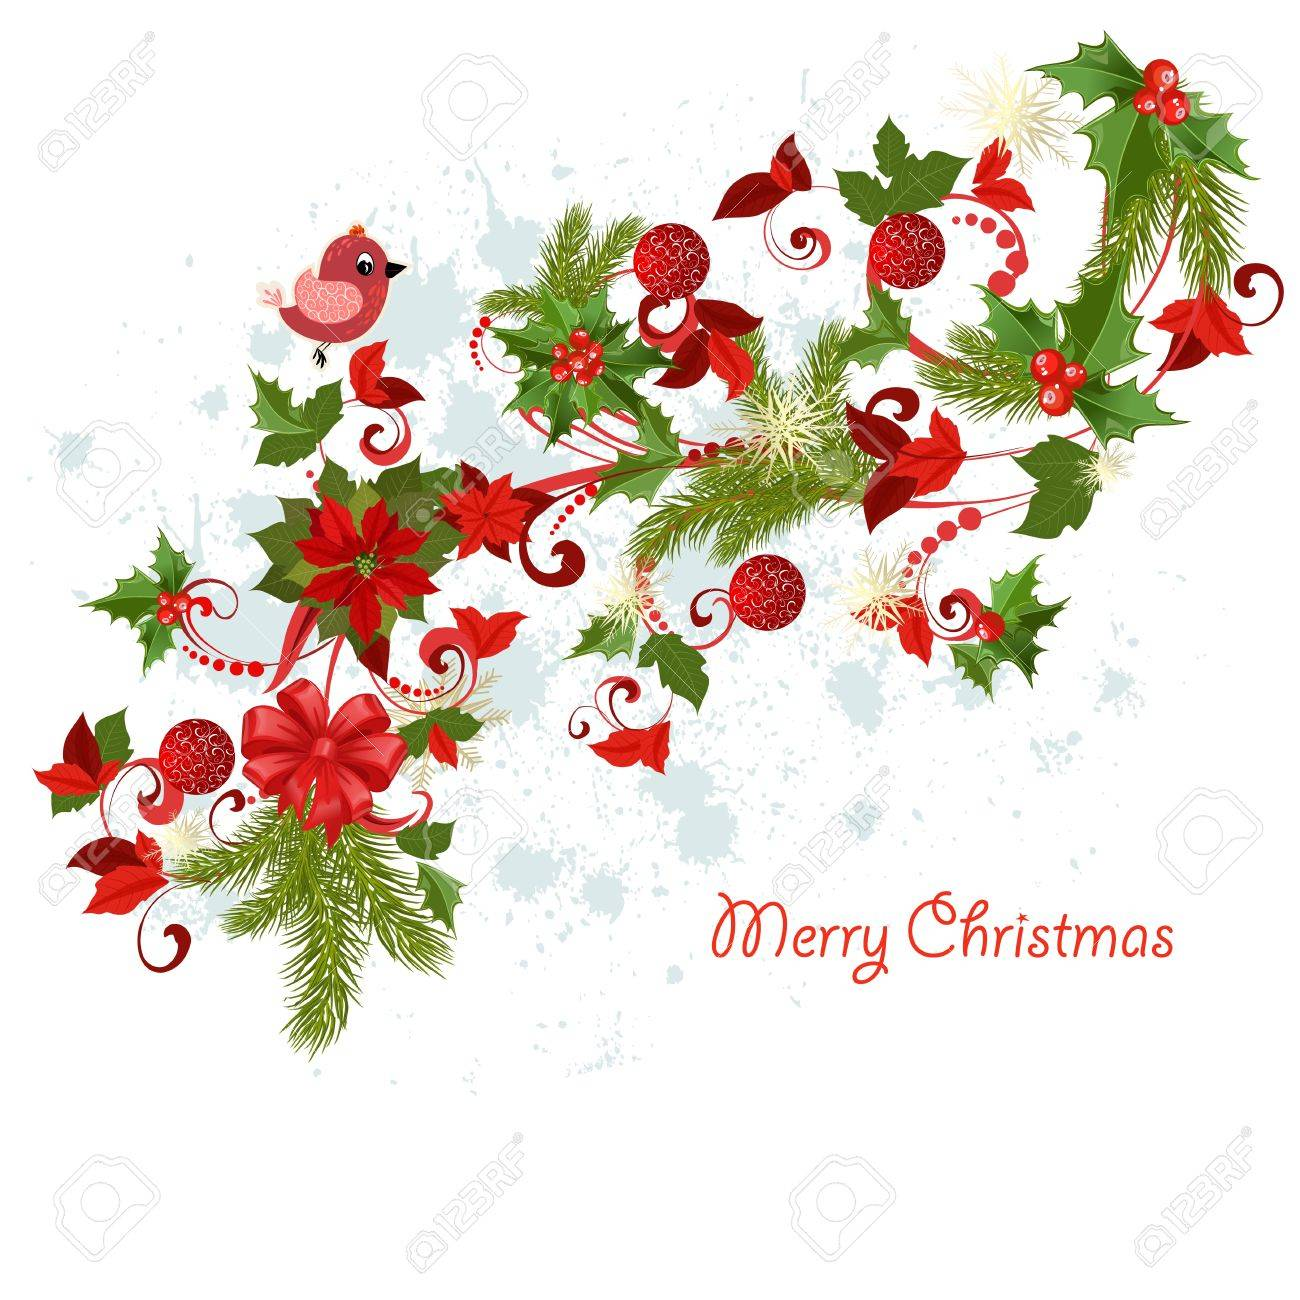 Design a Christmas greeting card Stock Vector - 17009790